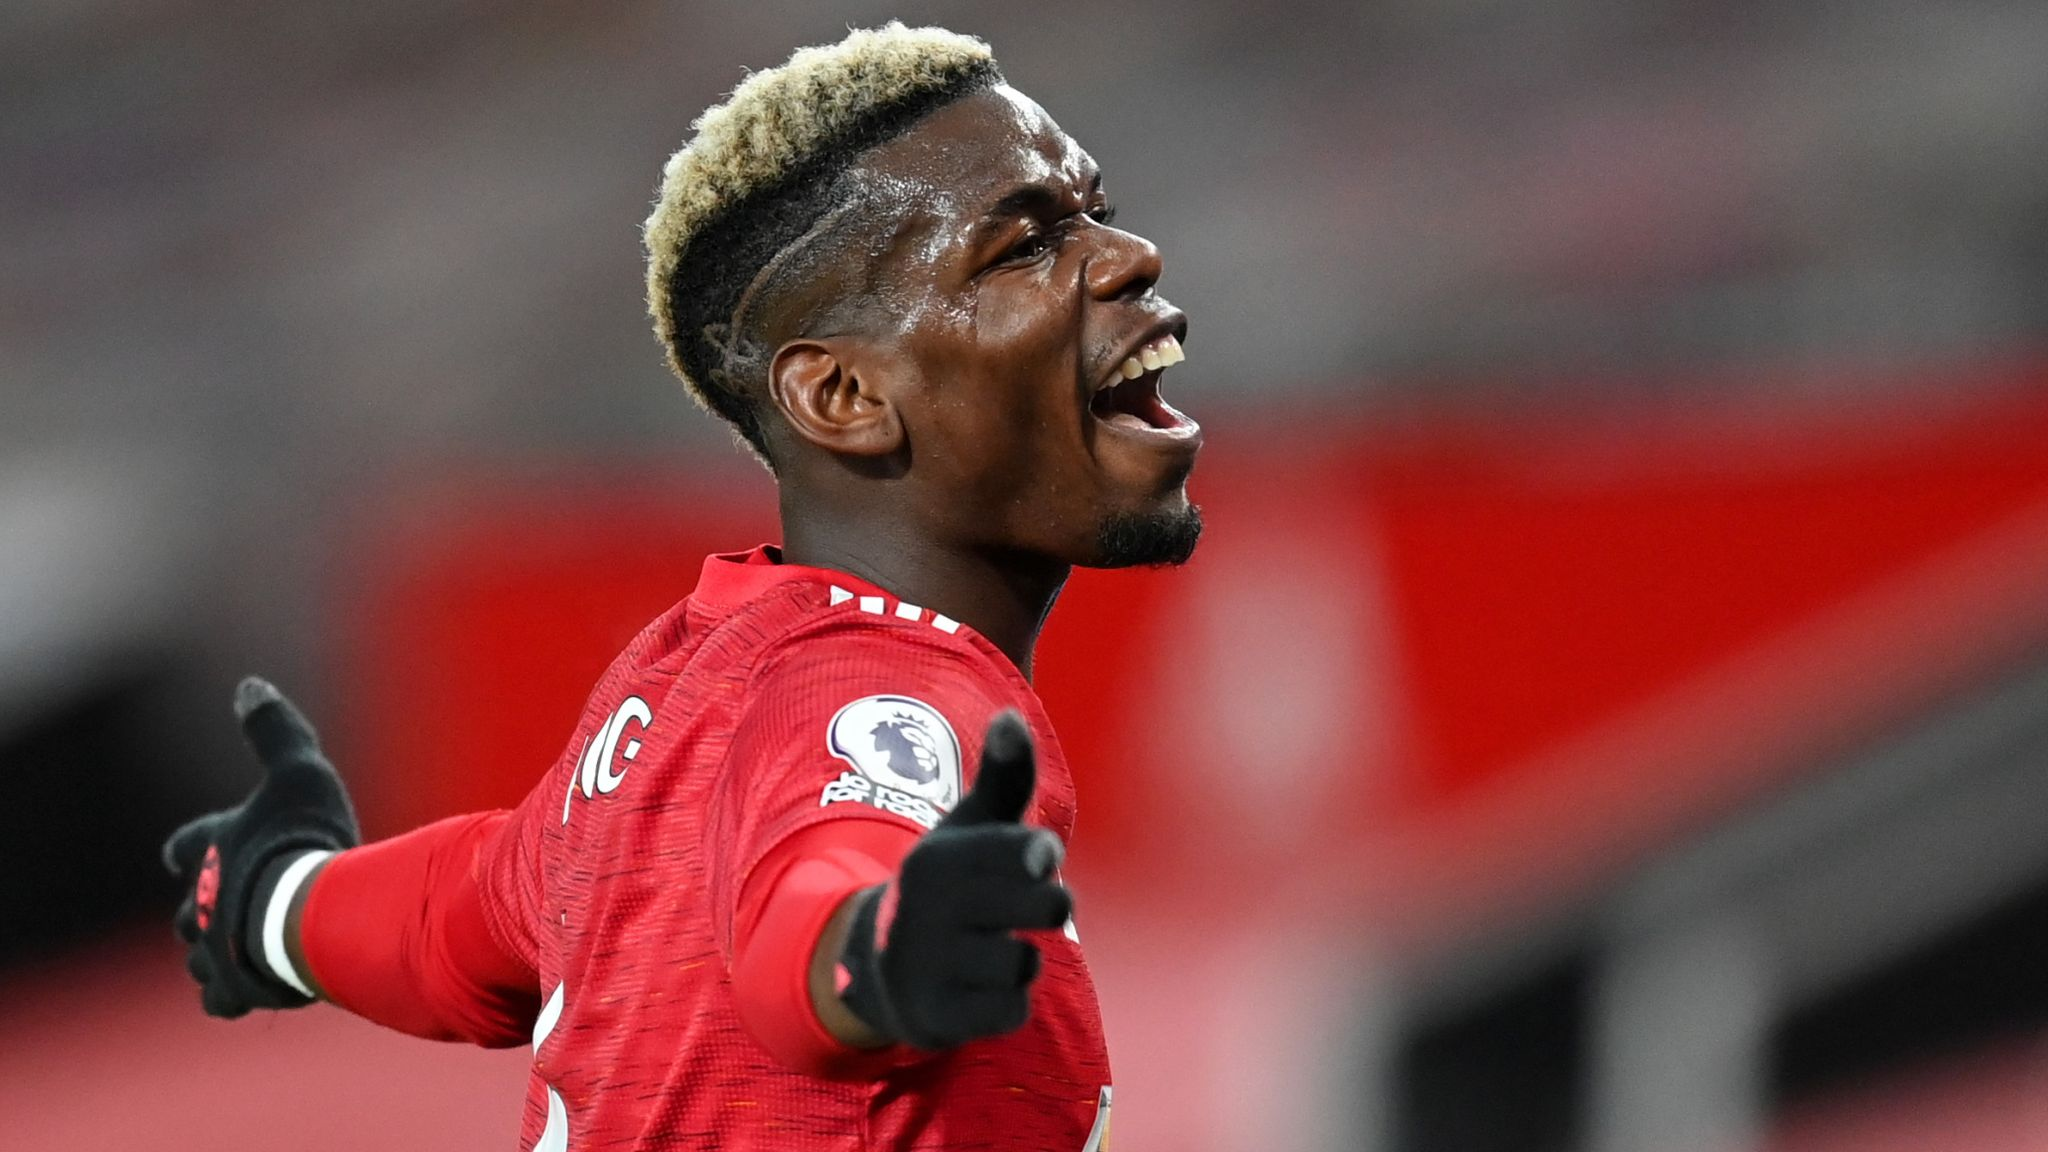 Paul Pogba: Manchester United midfielder vows to 'fight' for club    Football News   Sky Sports